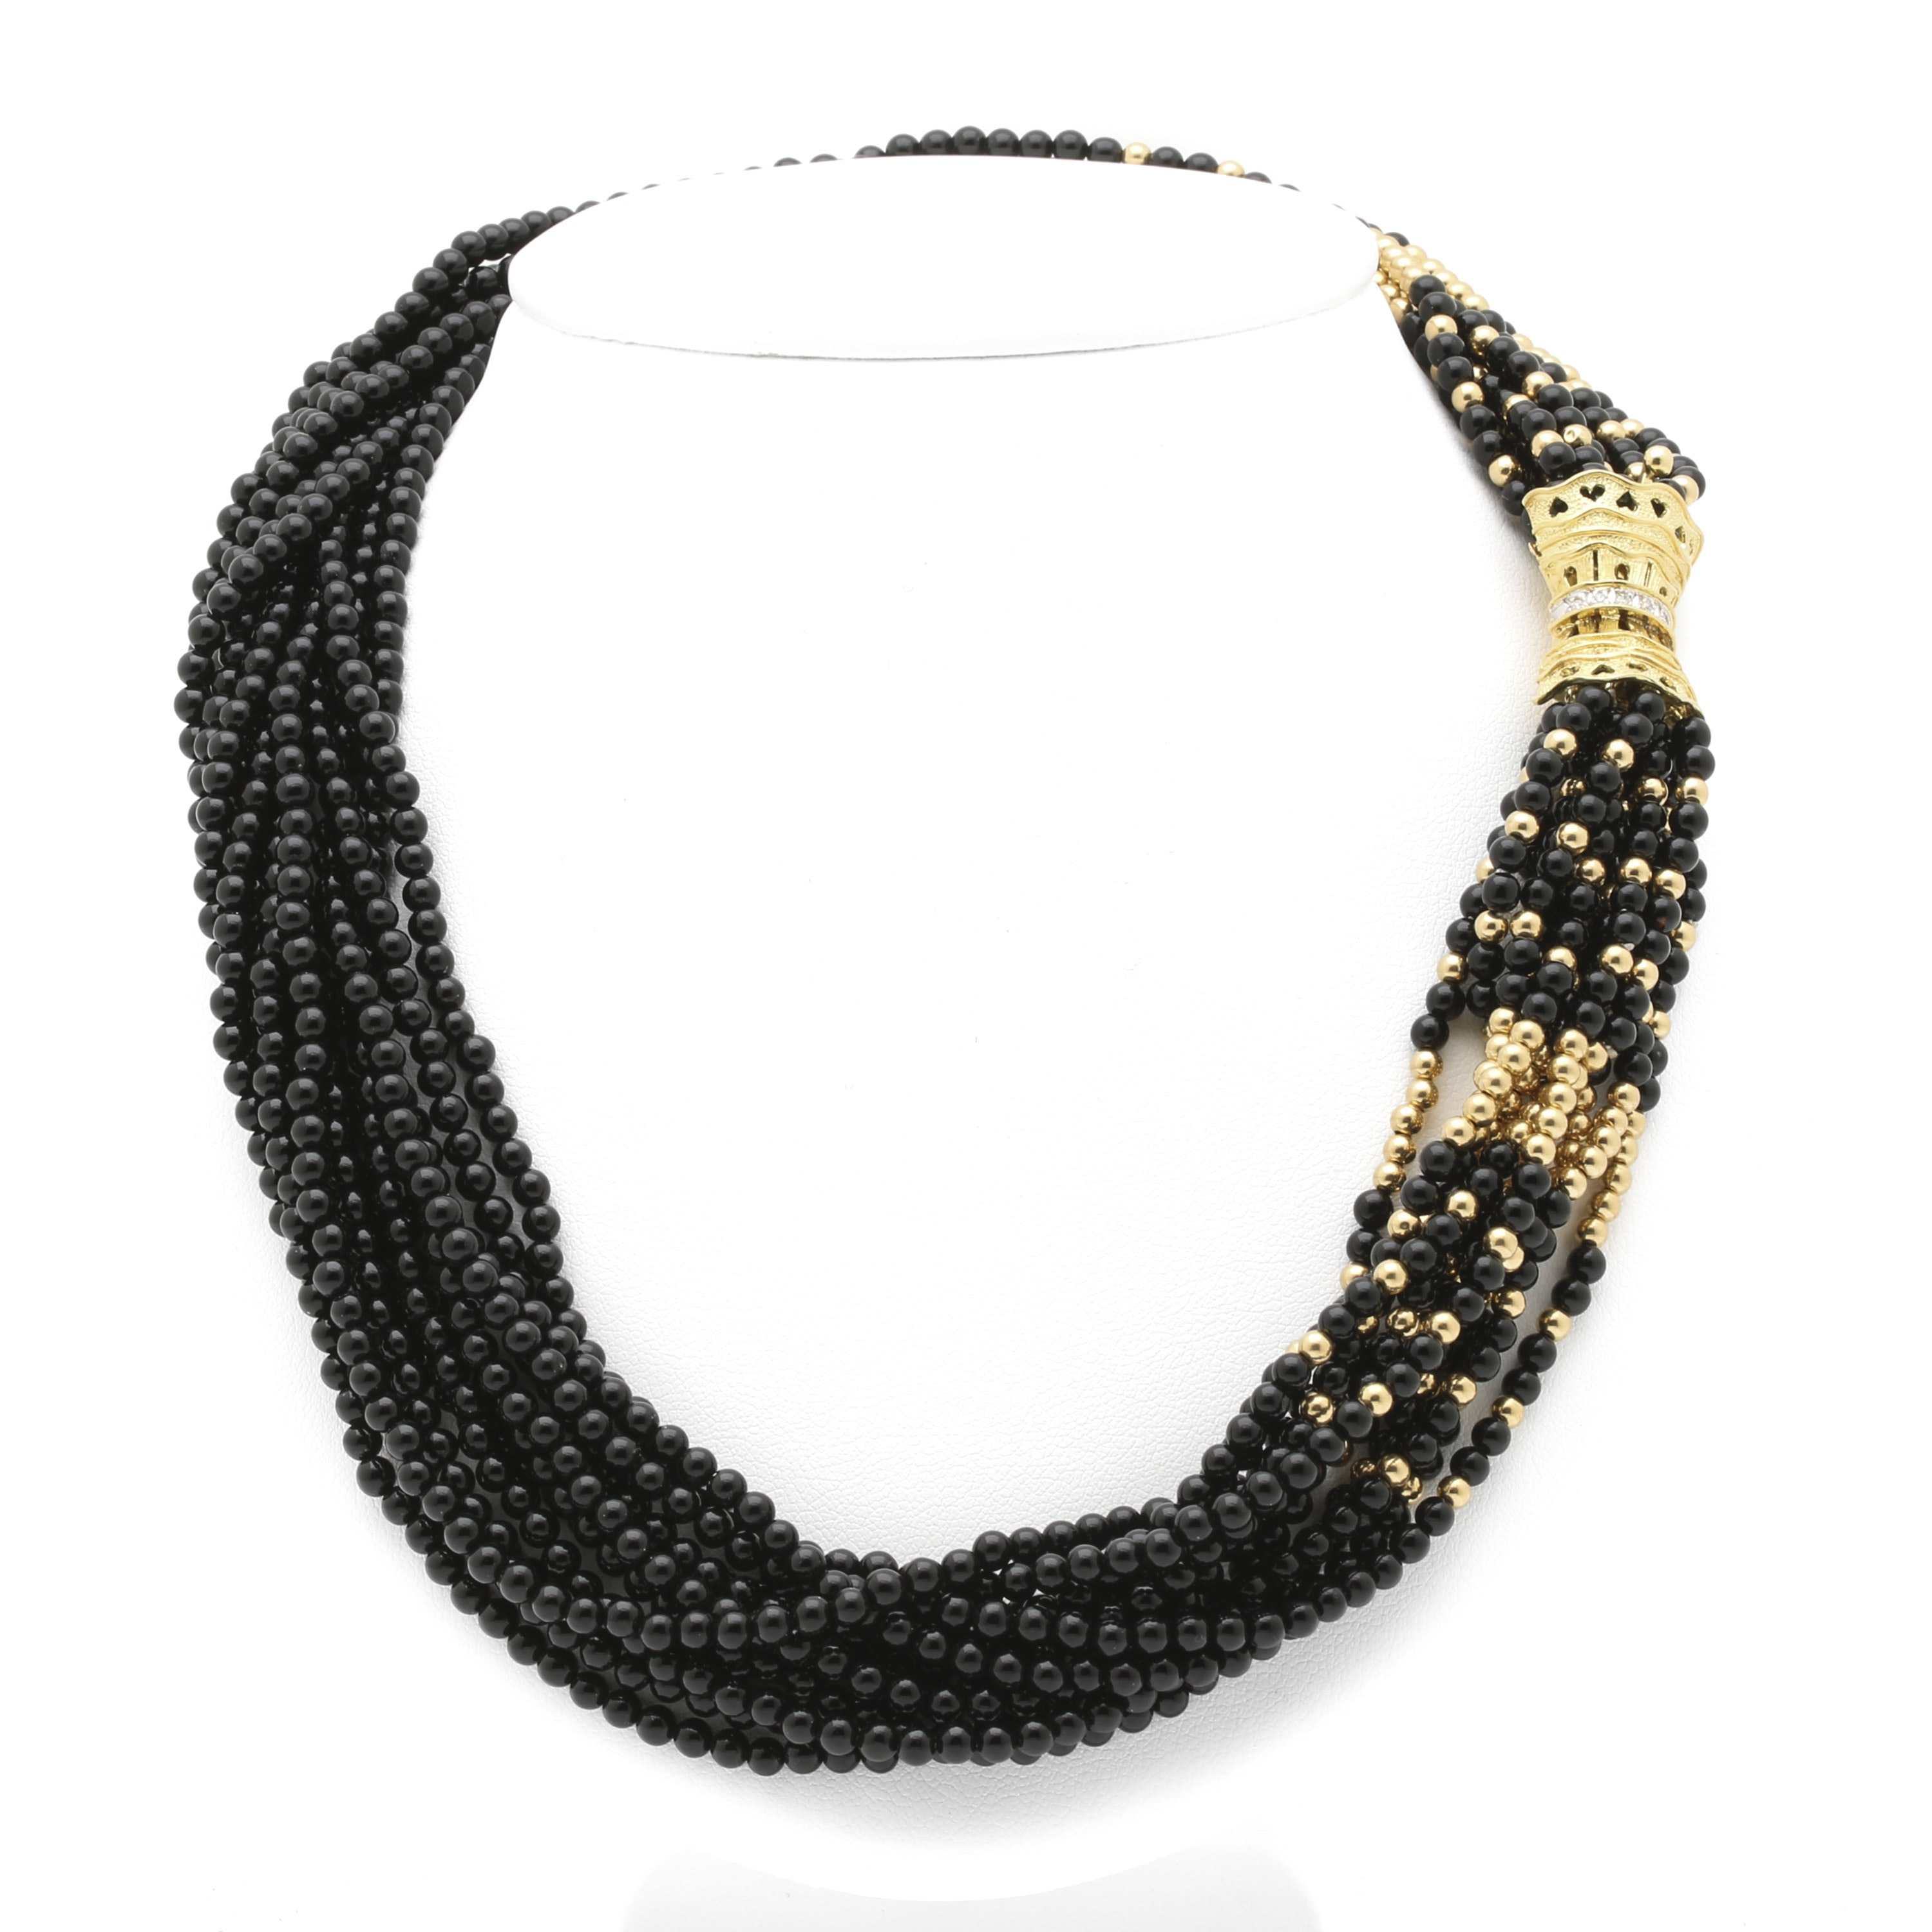 14K Yellow Gold Black Onyx Necklace with Diamond Clasp